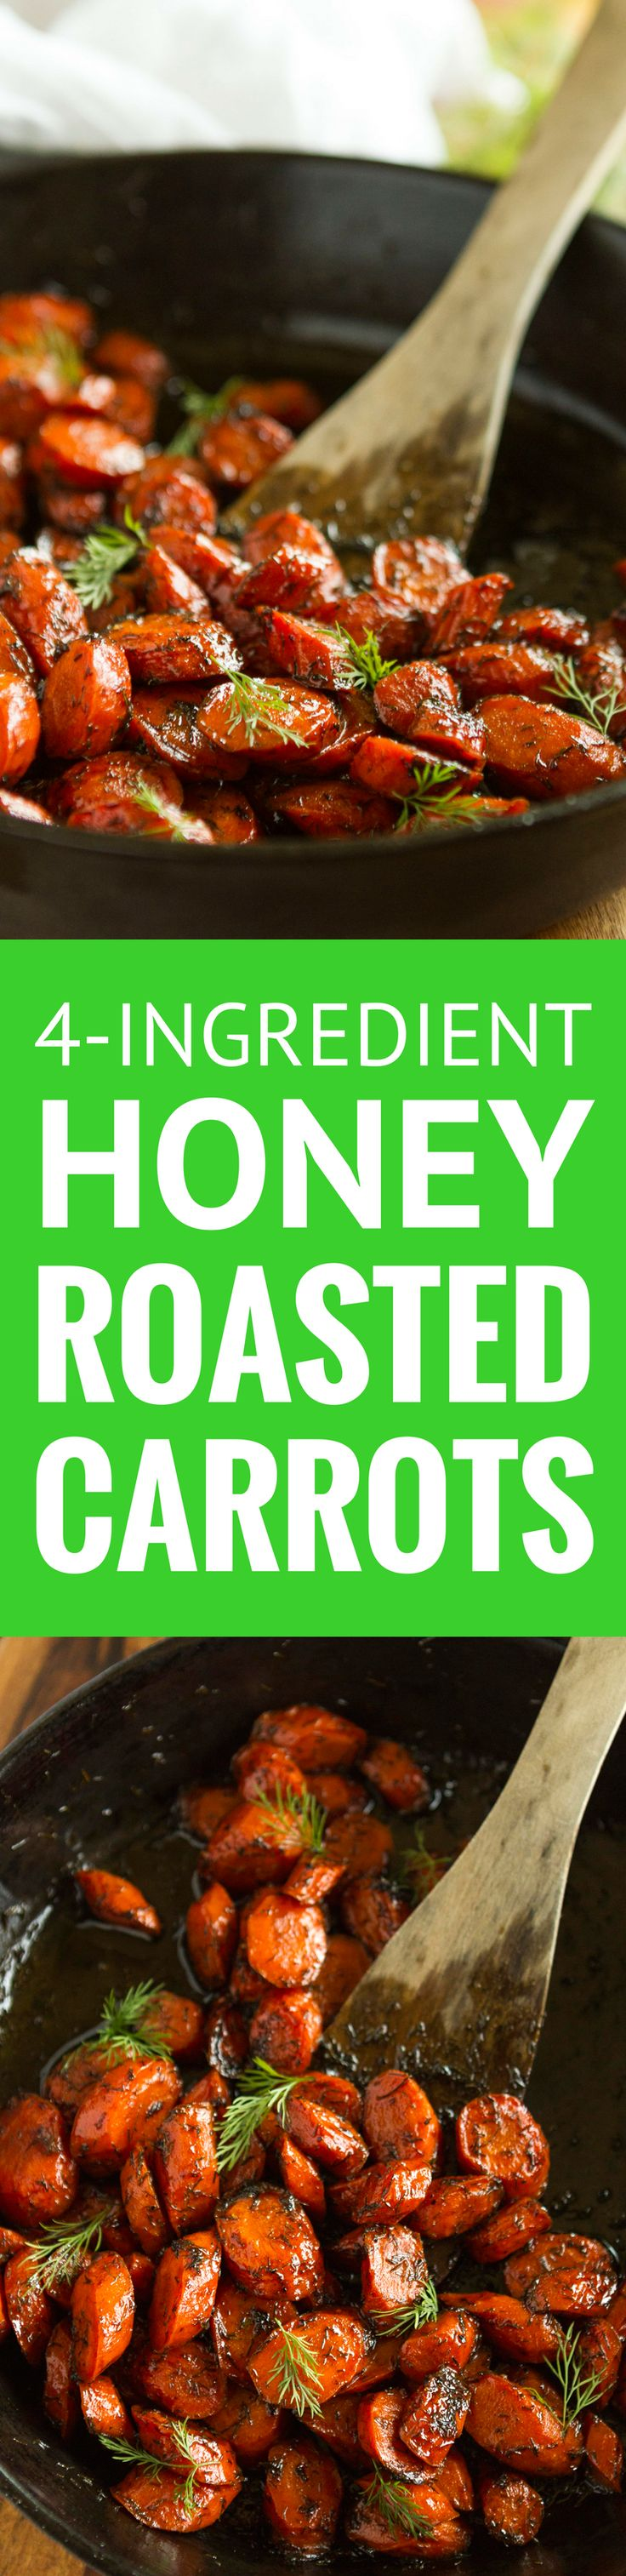 Brown Butter Honey Roasted Carrots with Dill -- this easy roasted carrots recipe is sure to get the whole family to eat their veggies! Just 4 simple ingredients: brown butter, carrots (of course), honey and dried dill… Totally amazing!!!   roasted carrots honey   roasted carrots oven   roasted carrots healthy   find the recipe on unsophisticook.com